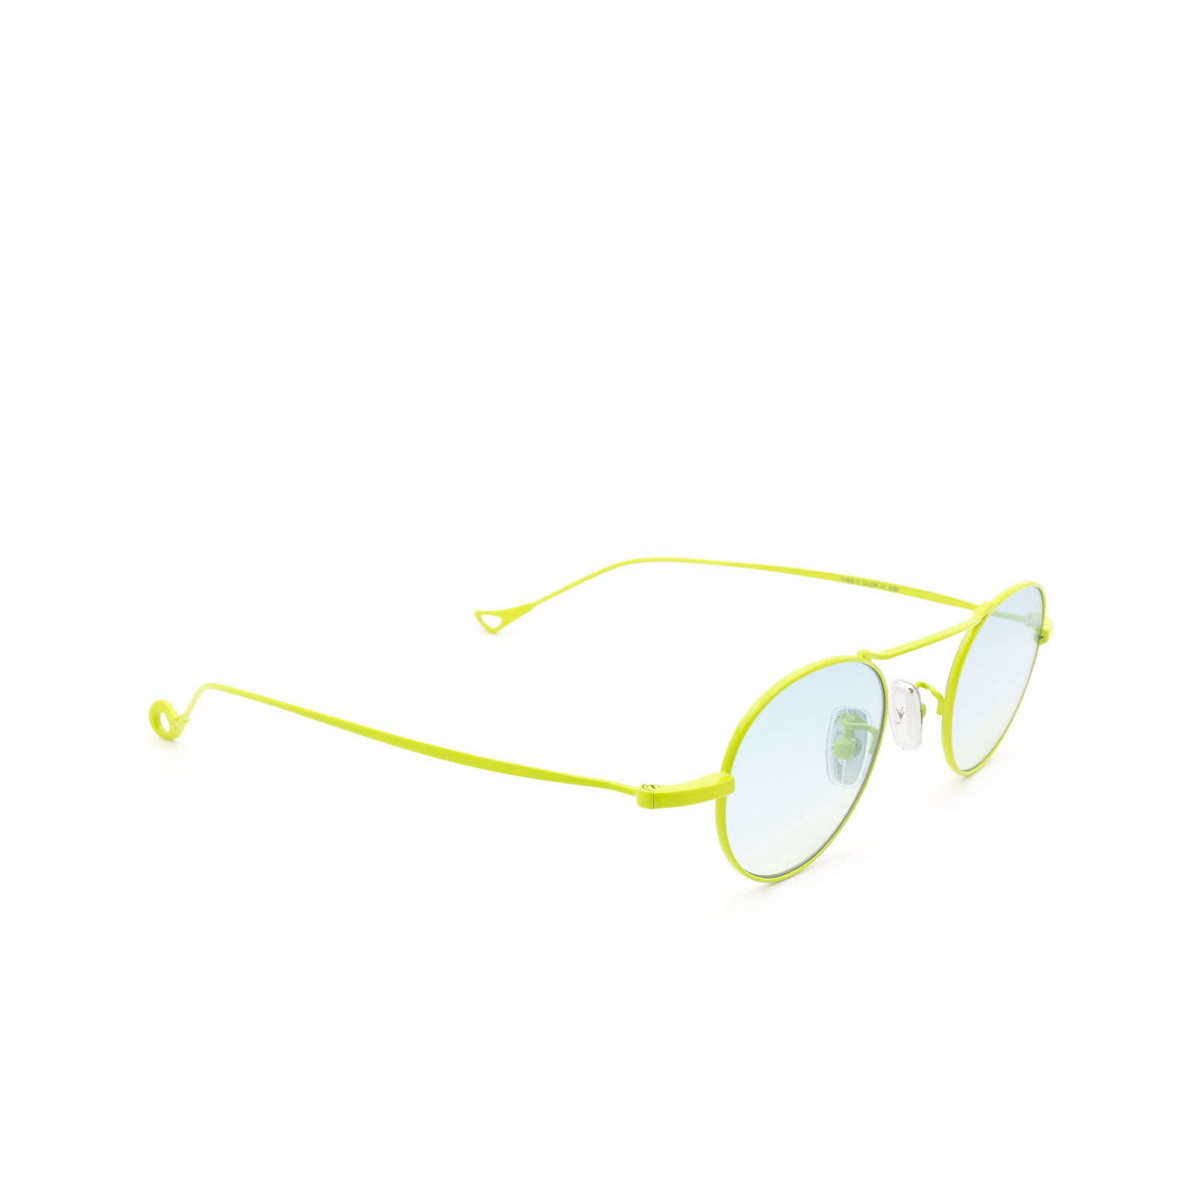 Eyepetizer® Round Sunglasses: Yves color Green Lime C.12-23F - three-quarters view.